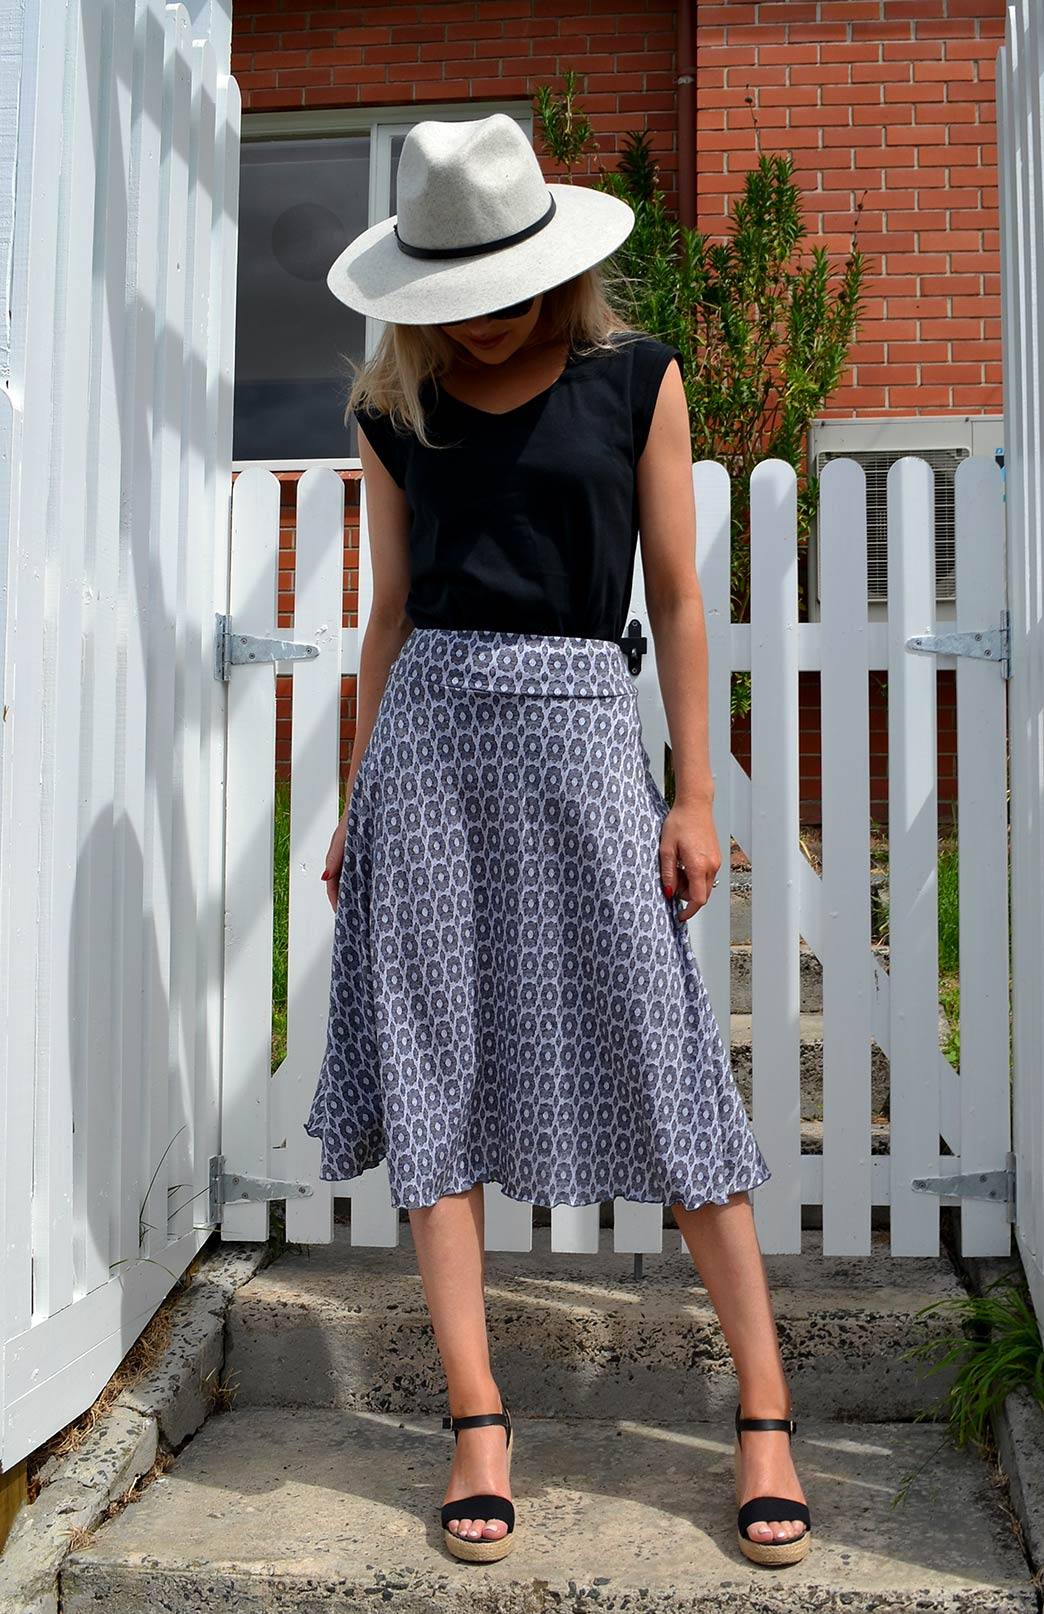 Twirl Skirt in Black and White Daisy